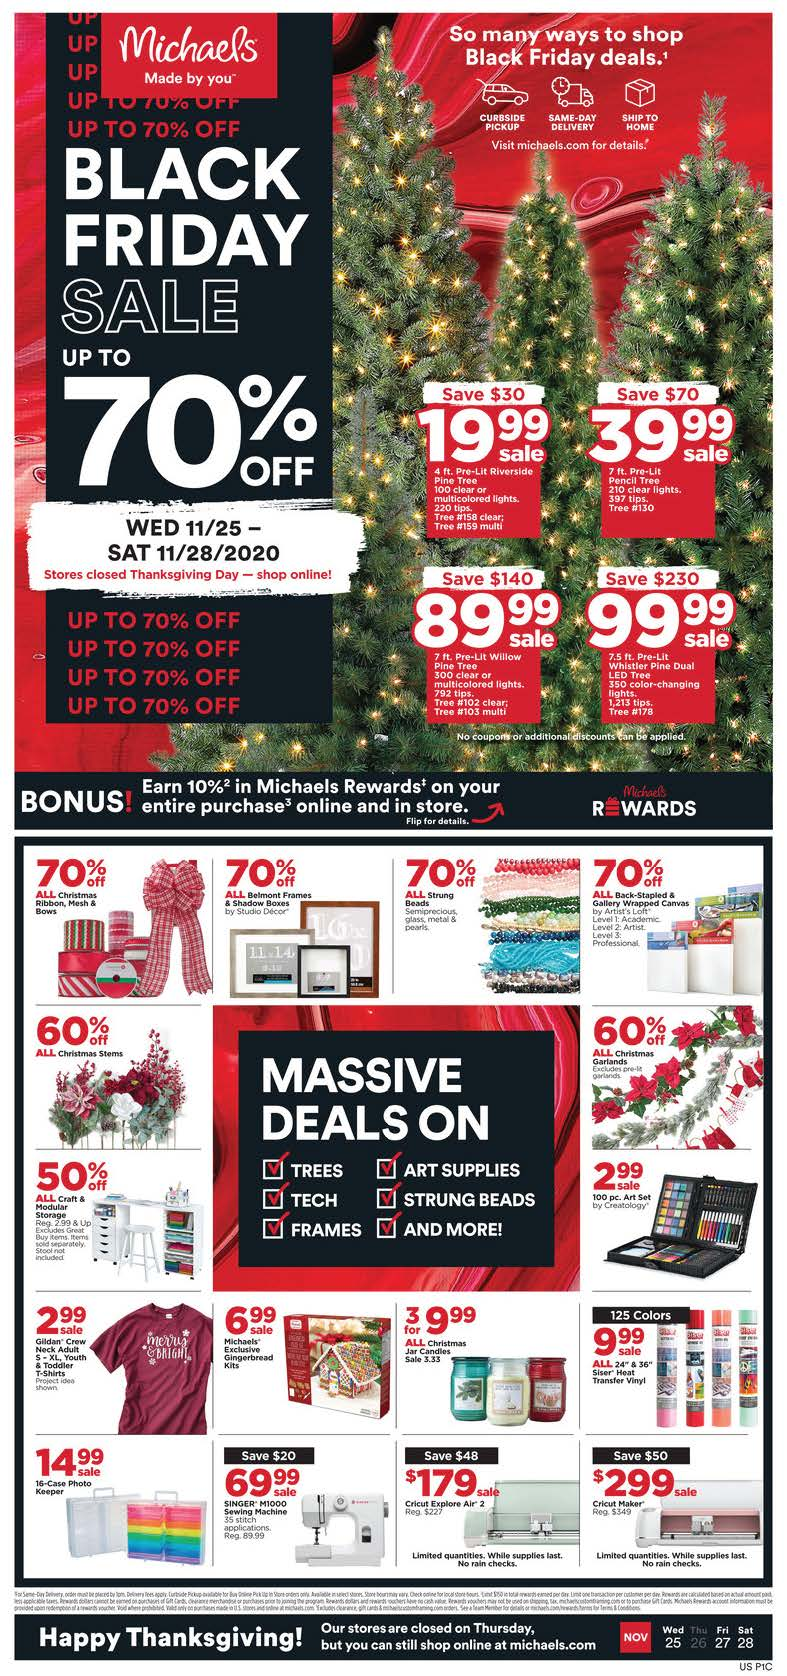 Michaels Black Friday 2020 Page 1